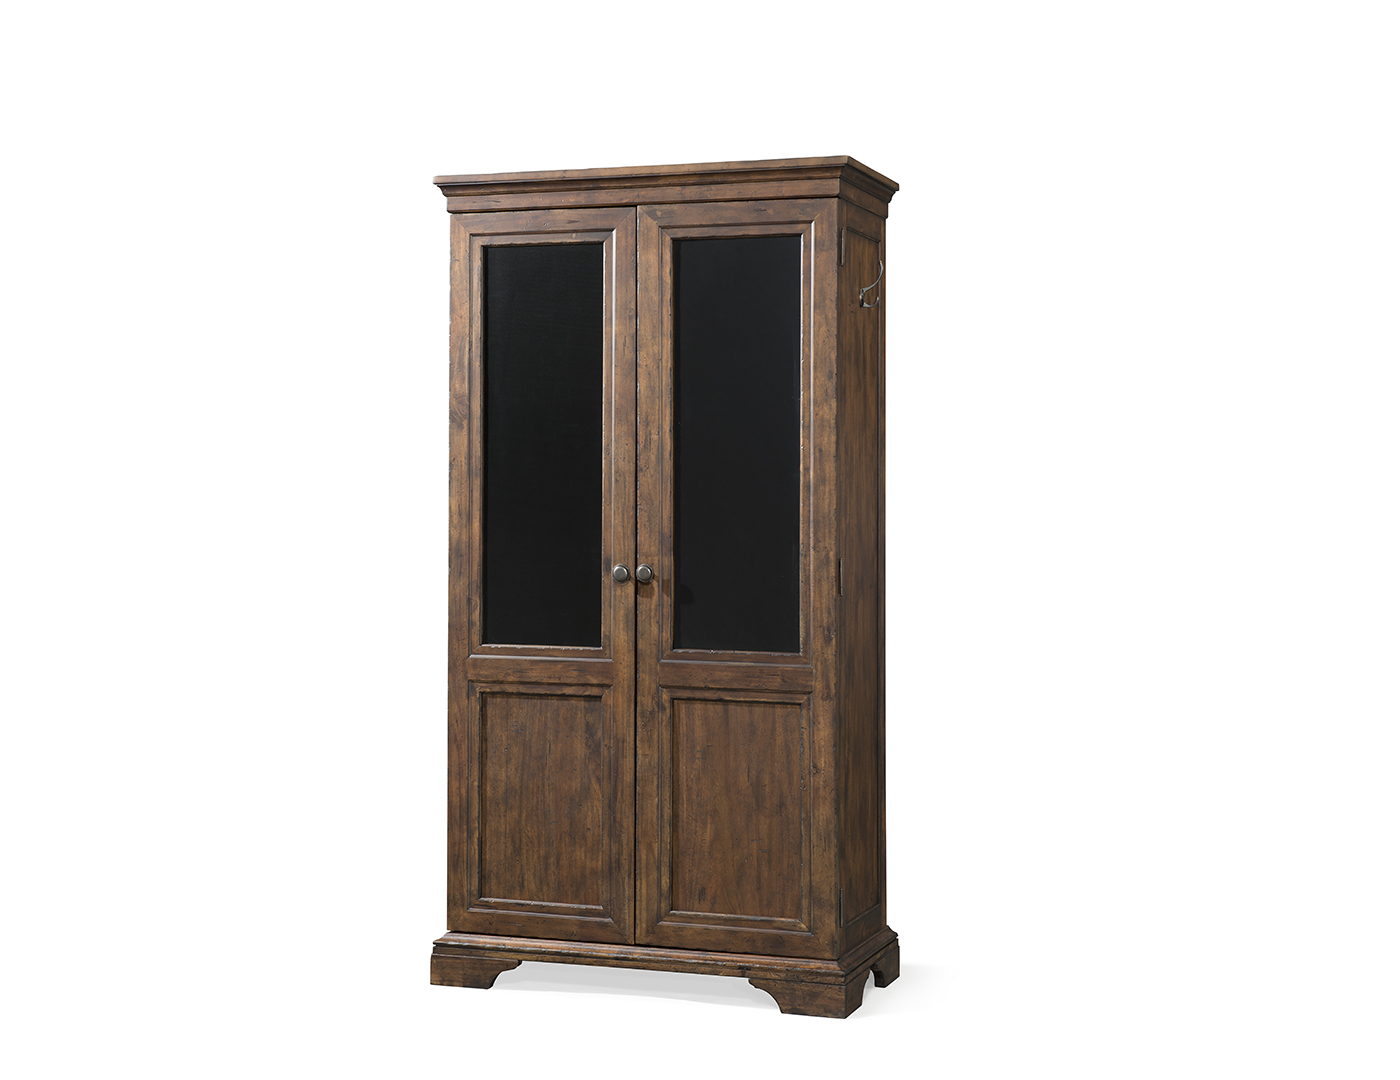 Trisha Yearwood Storage Cabinet